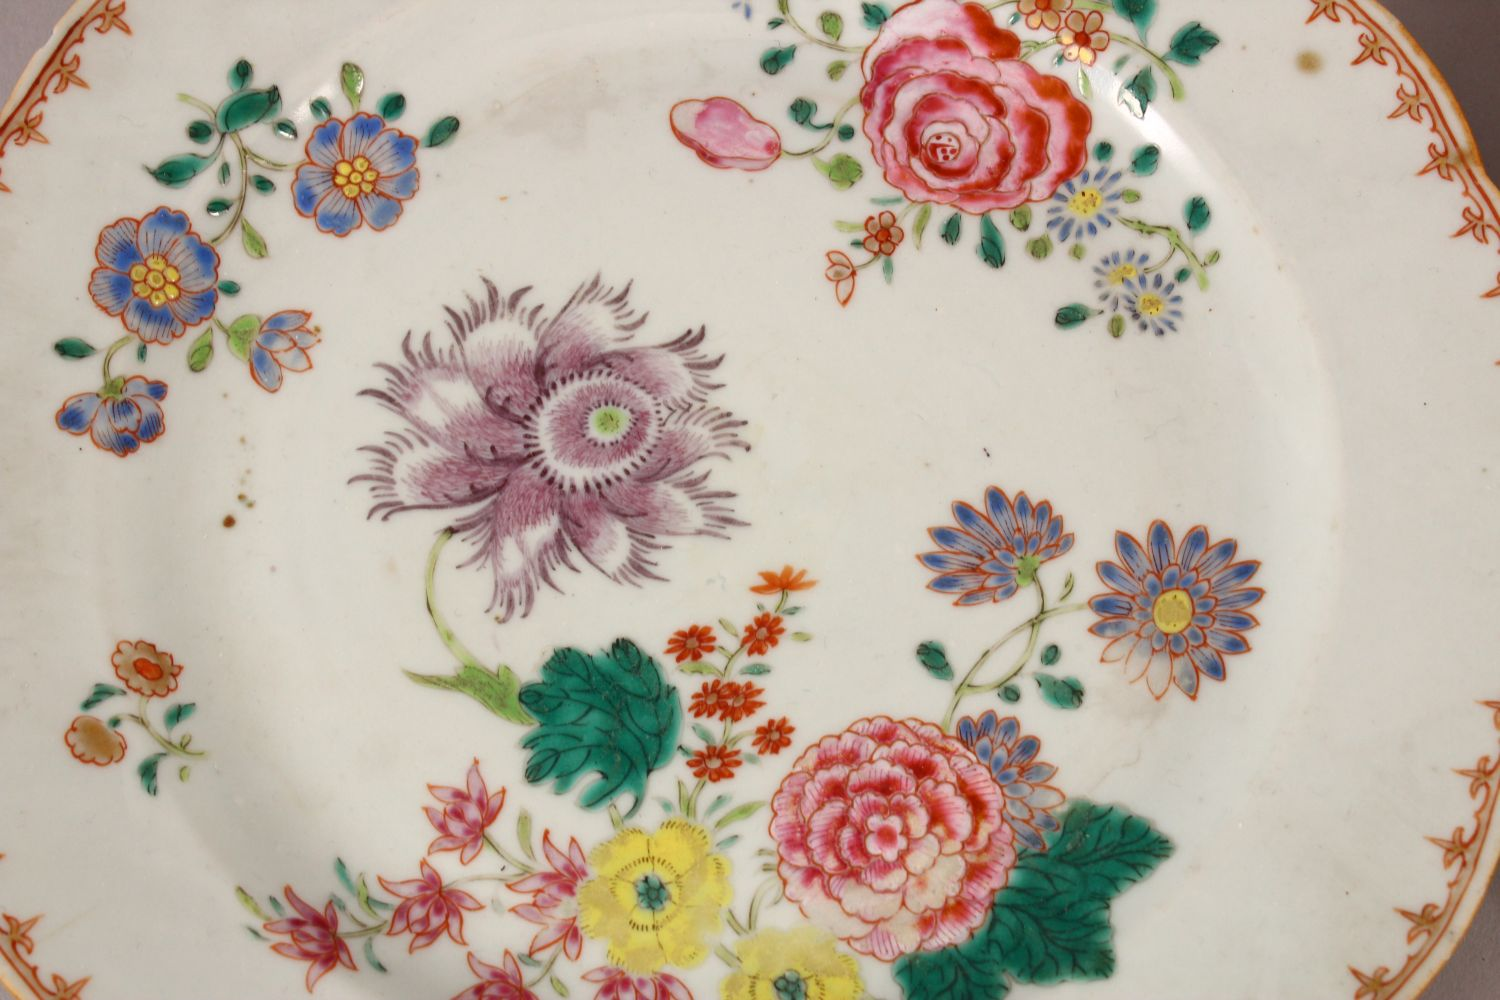 A SET OF FOUR 18TH / 19TH CENTURY CHINESE FAMILLE ROSE PLATES, with floral decoration, 23cm - Image 2 of 6